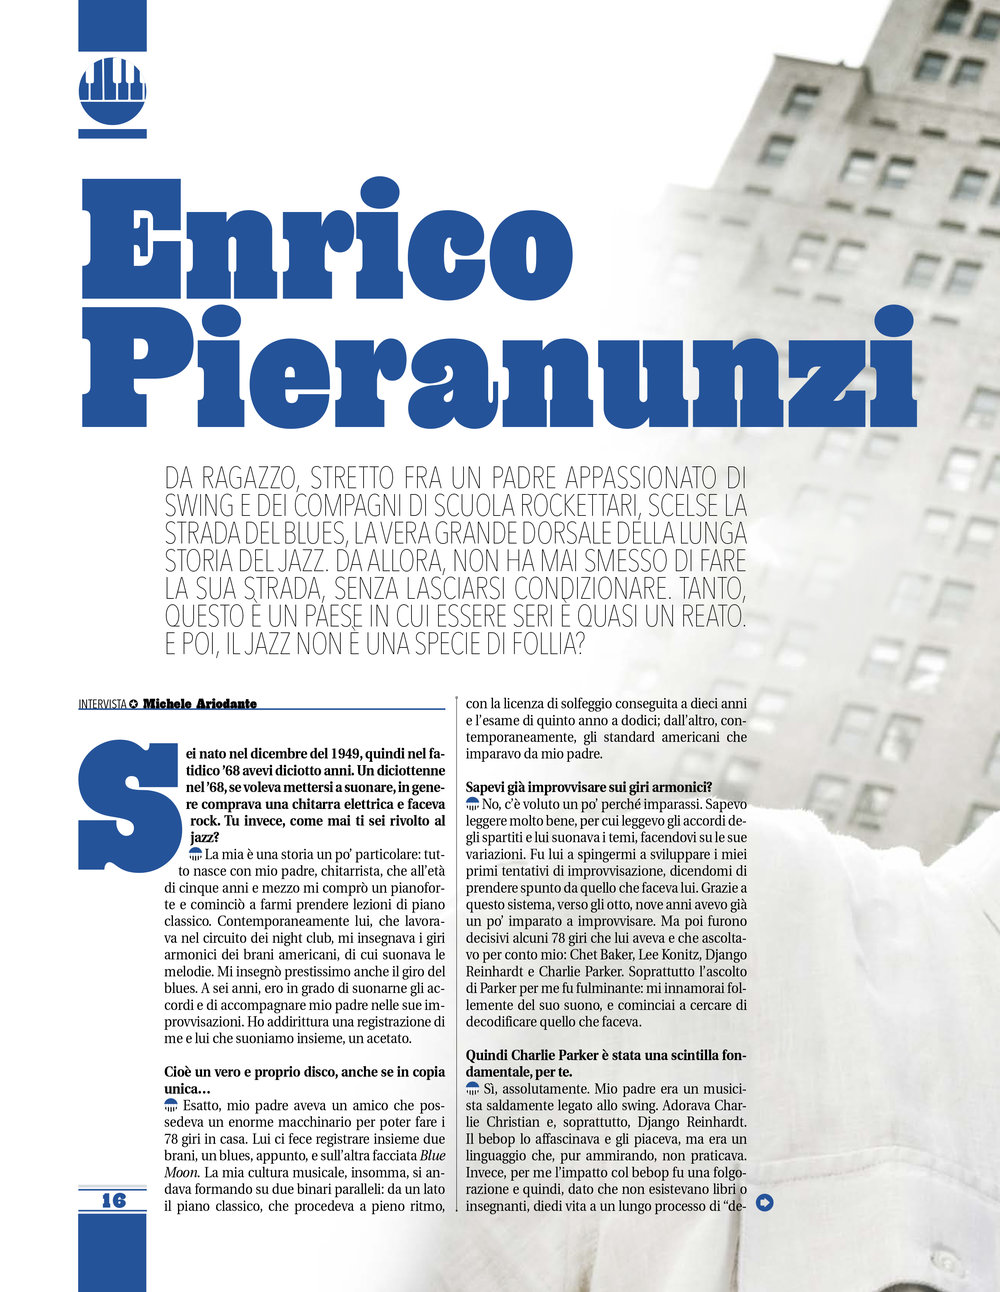 1 estratto Interview Pieranunzi da CJ2_Pagina_8.jpg